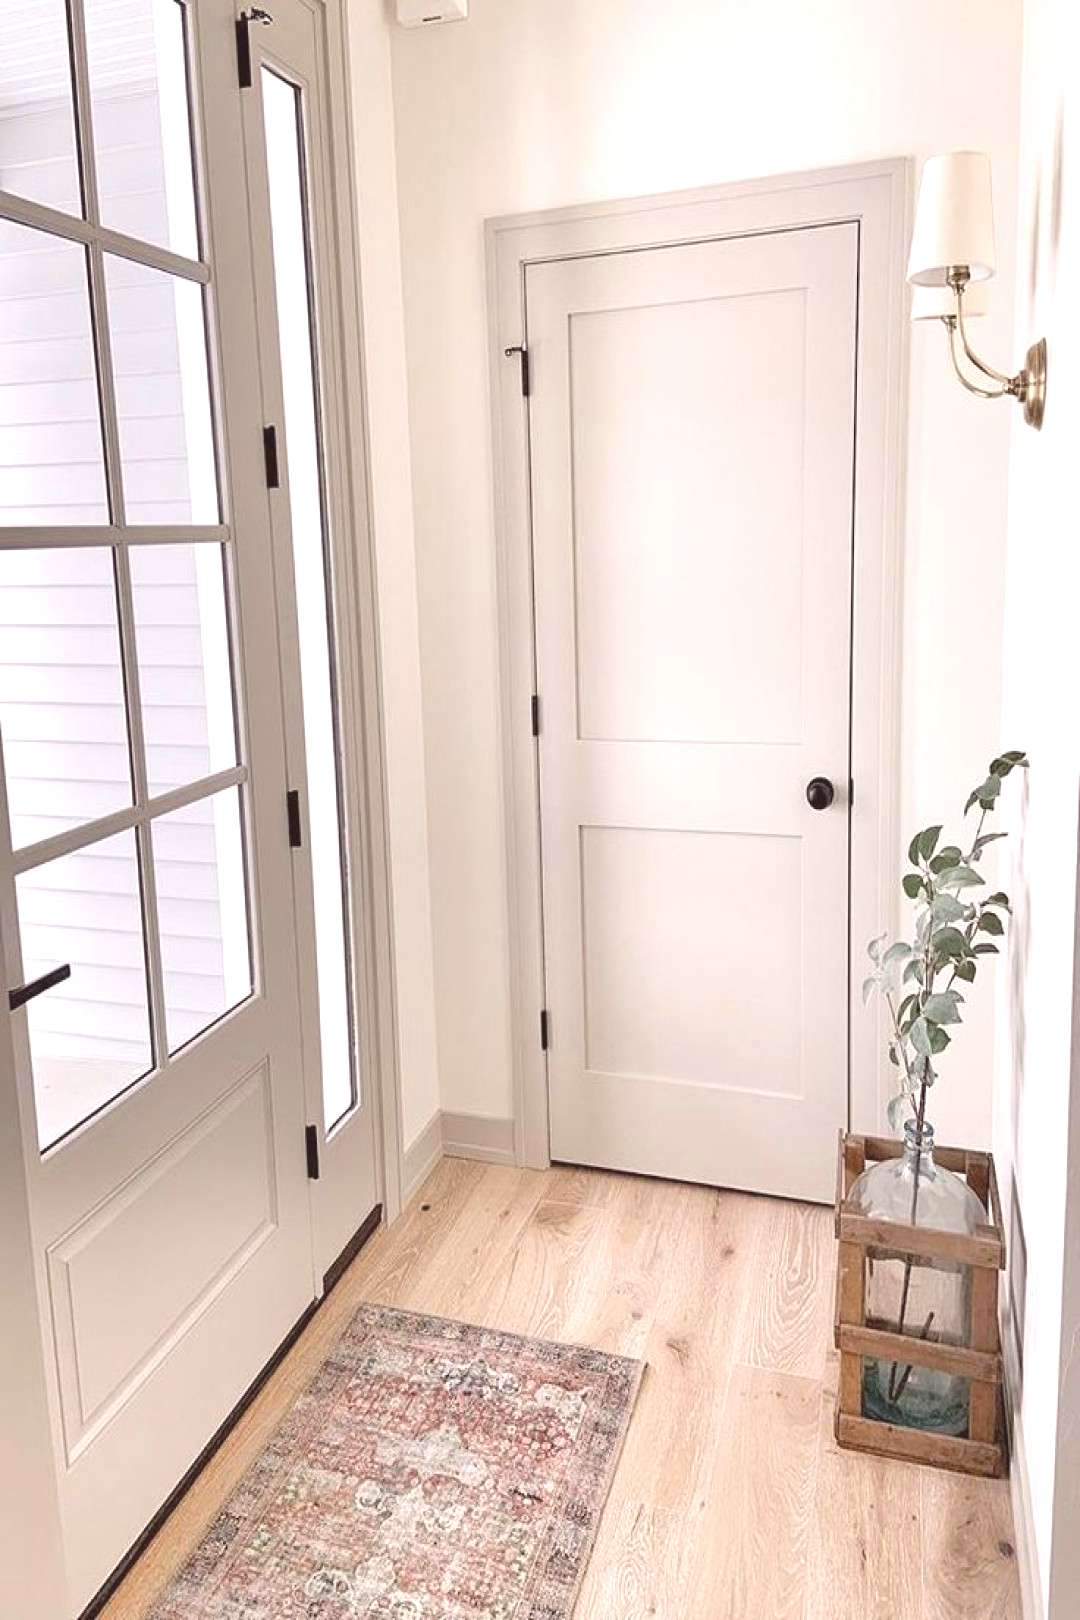 Revere Pewter Trim and Doors White Dove Walls Light Floors Revere Pewter Trim and Doors White Dove